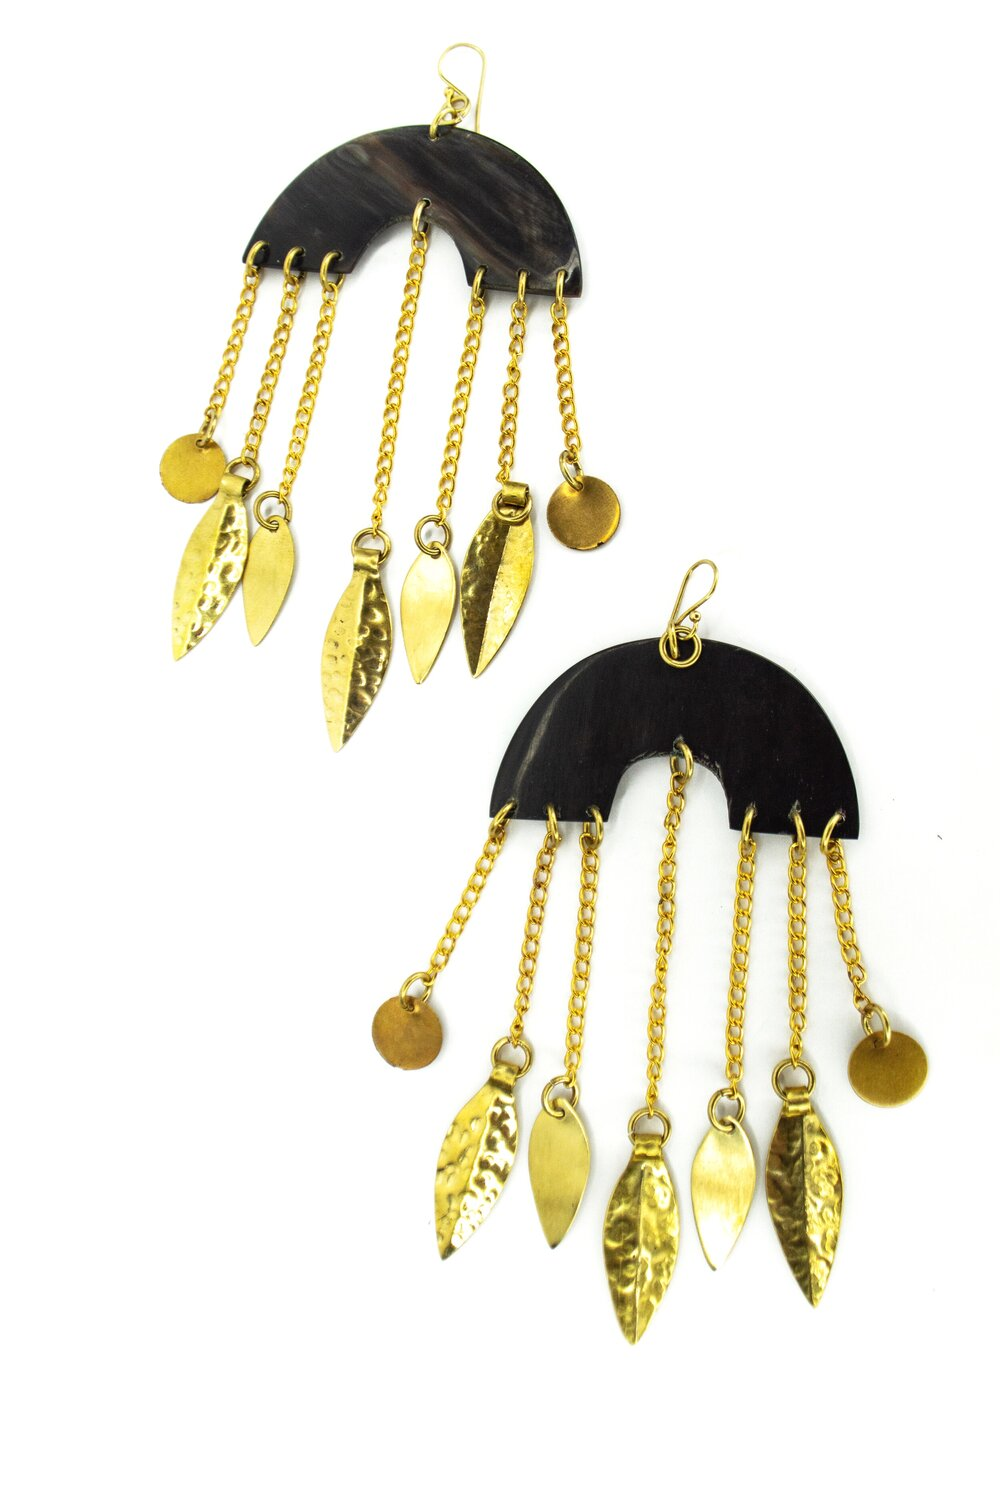 Our Horn Chandelier Earrings are handcrafted in Nairobi, Kenya using recycled solid brass and cow horn byproduct sourced from local farms. These earrings are a a staple for odAOMO and are also available in light horn. All odAOMO jewelry is designed by Dr. Sophia Aomo Omoro and produced in limited quantities.